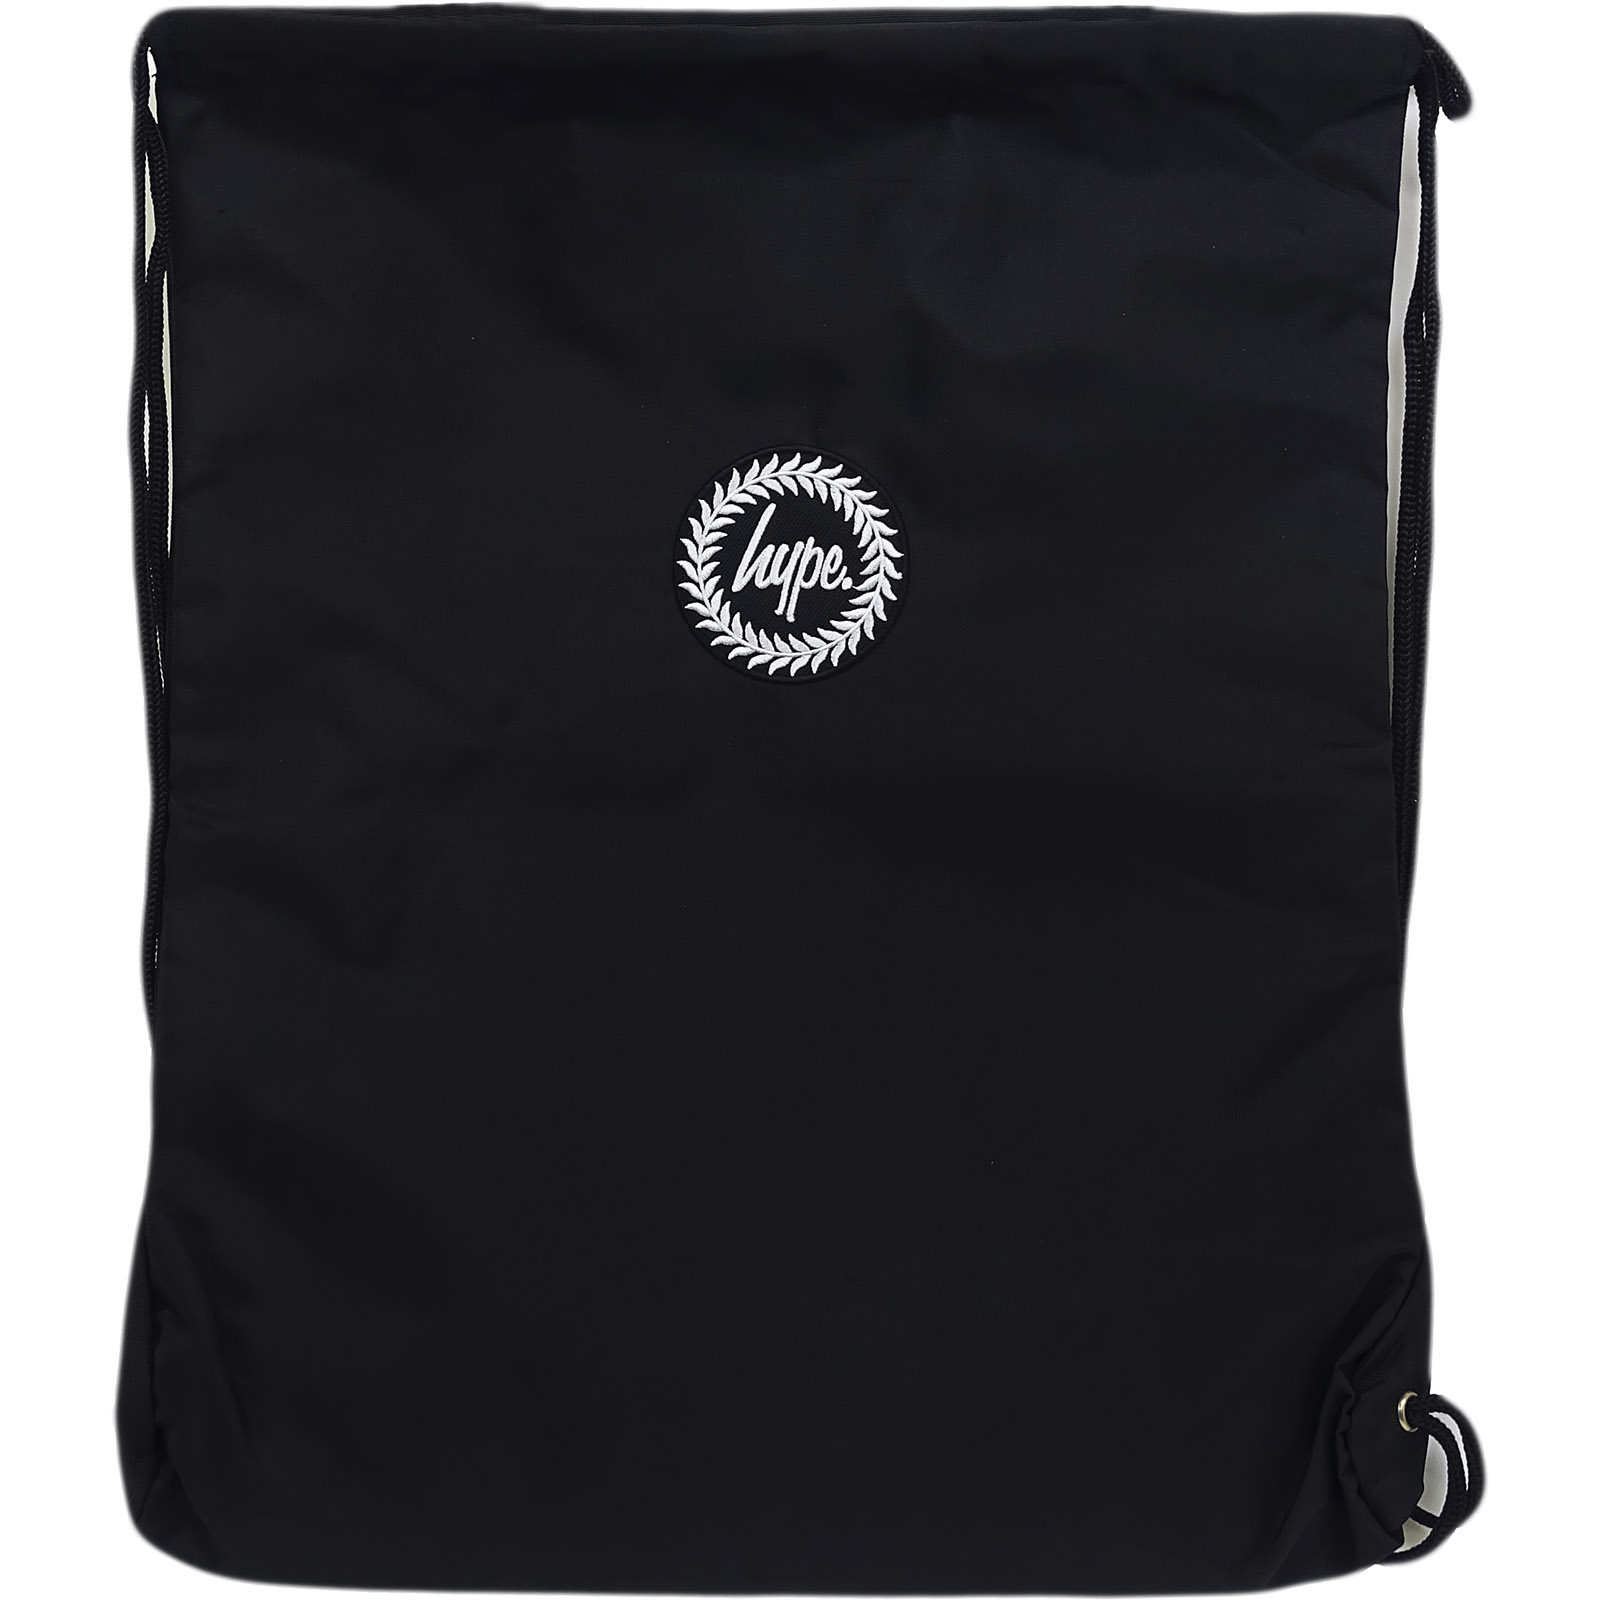 Just Hype Drawstring Bags - Plain Black Crest 5056120603480  b1516d452c95b